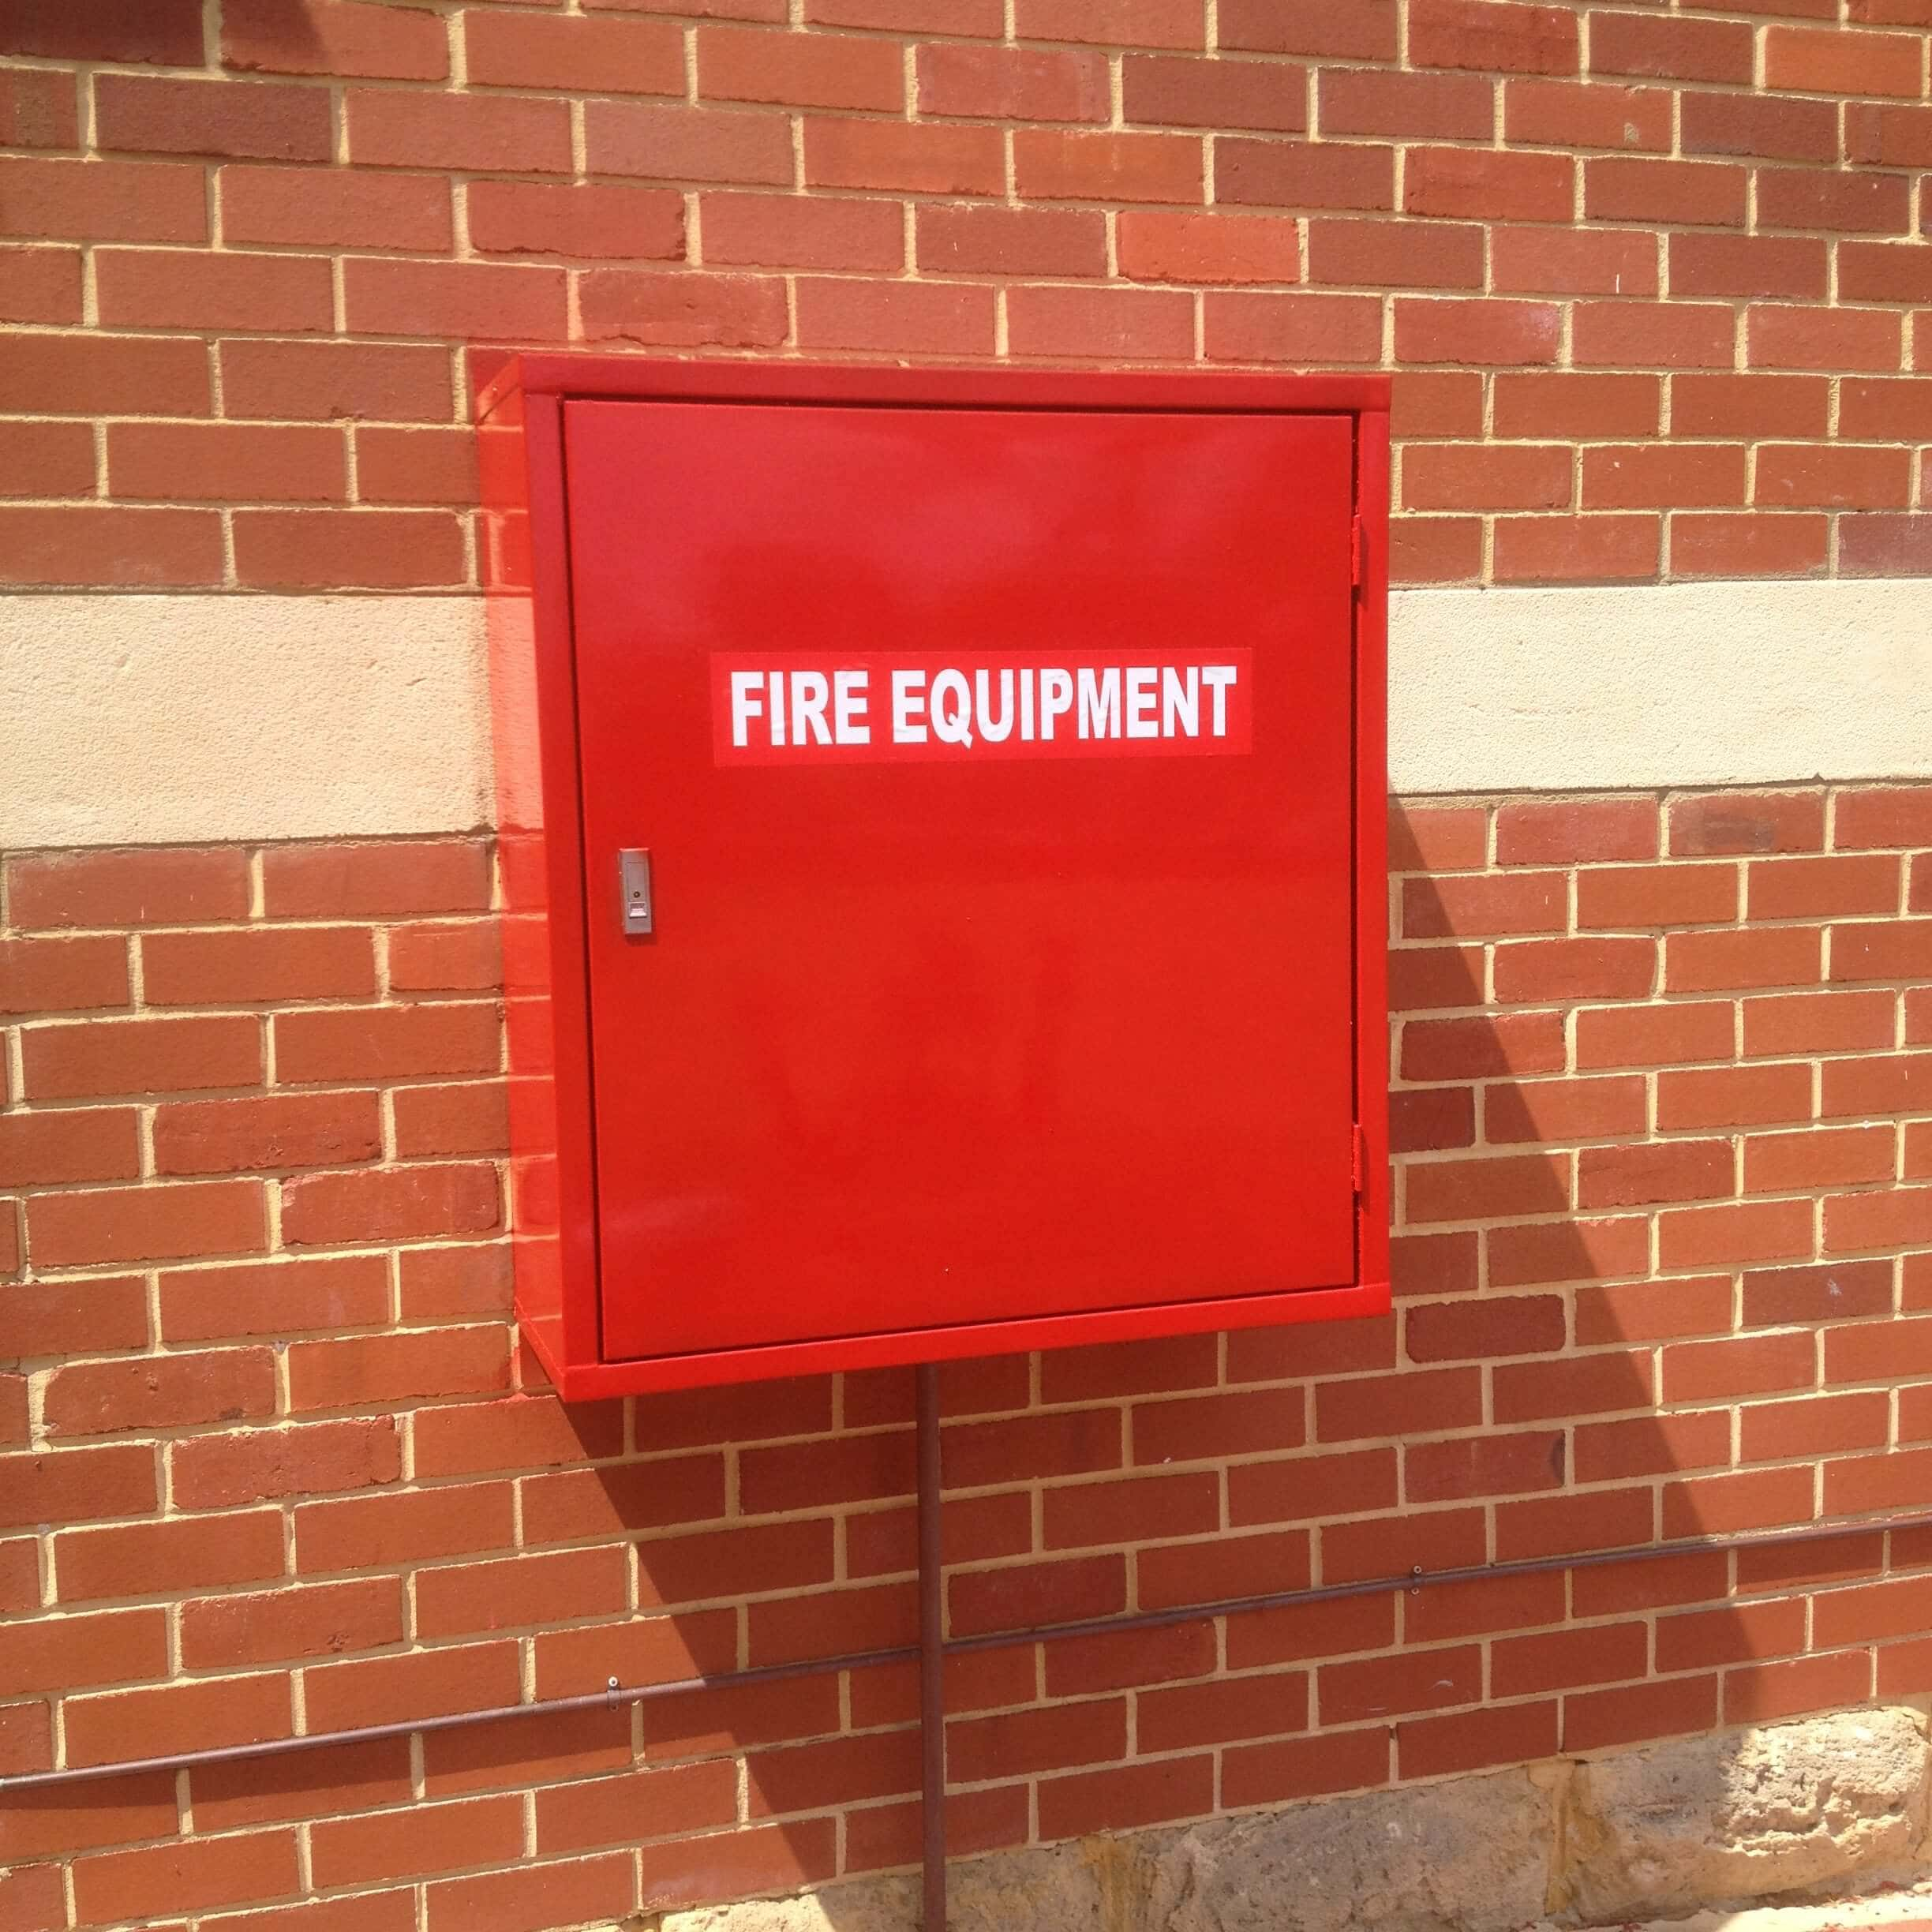 Everyday Plumbers Residential and Commercial Fire Equipment Repairs Replacement and Testing - Firebox 1260